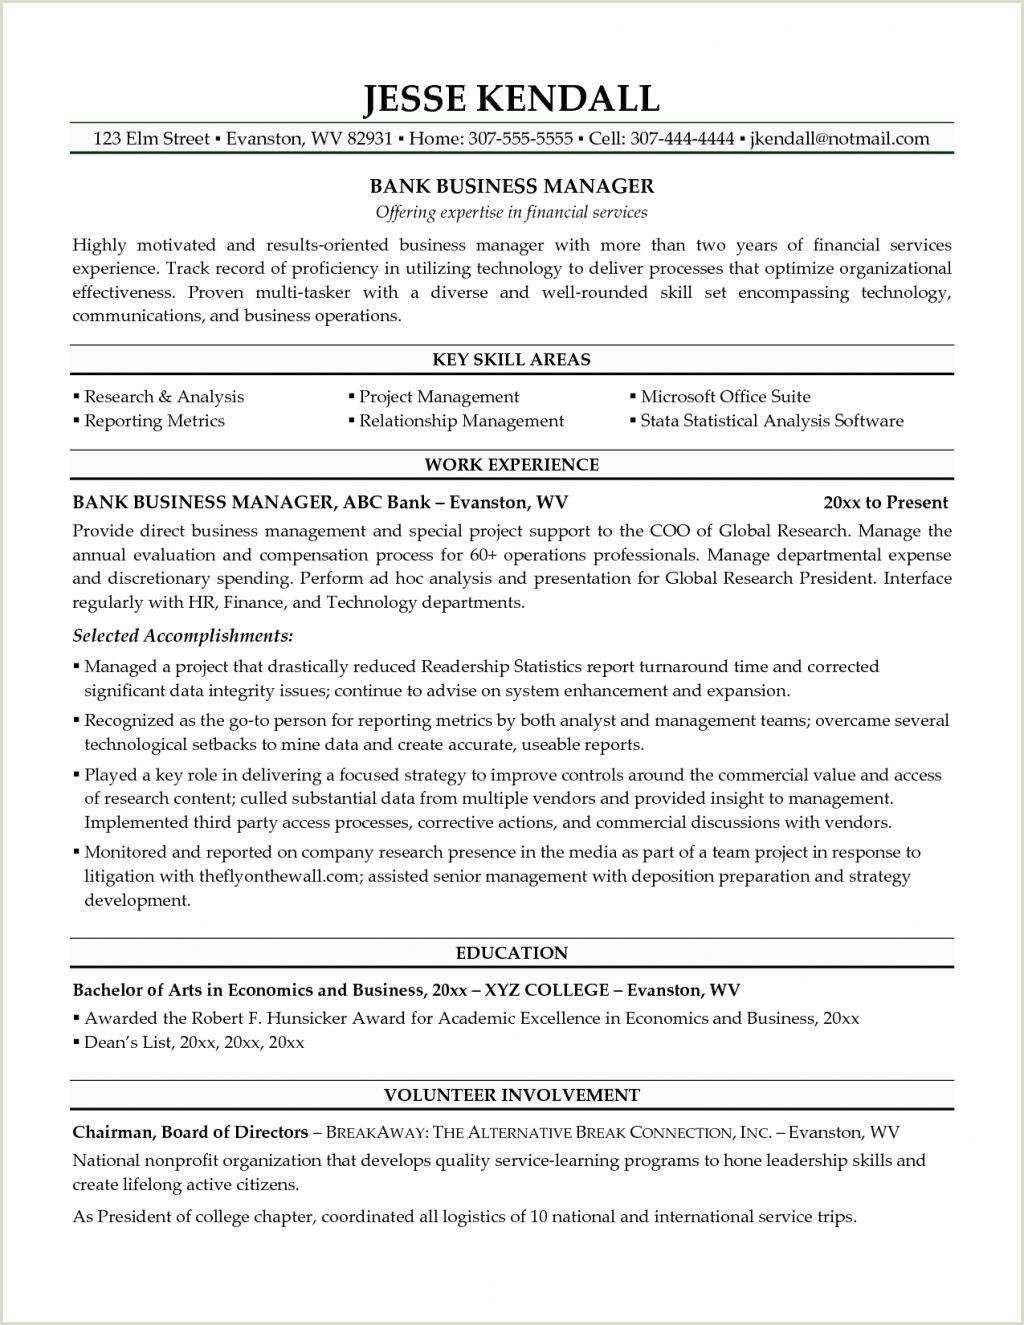 Fresher Resume Format Naukri Resume Template Format For Bankingtor Freshers Download